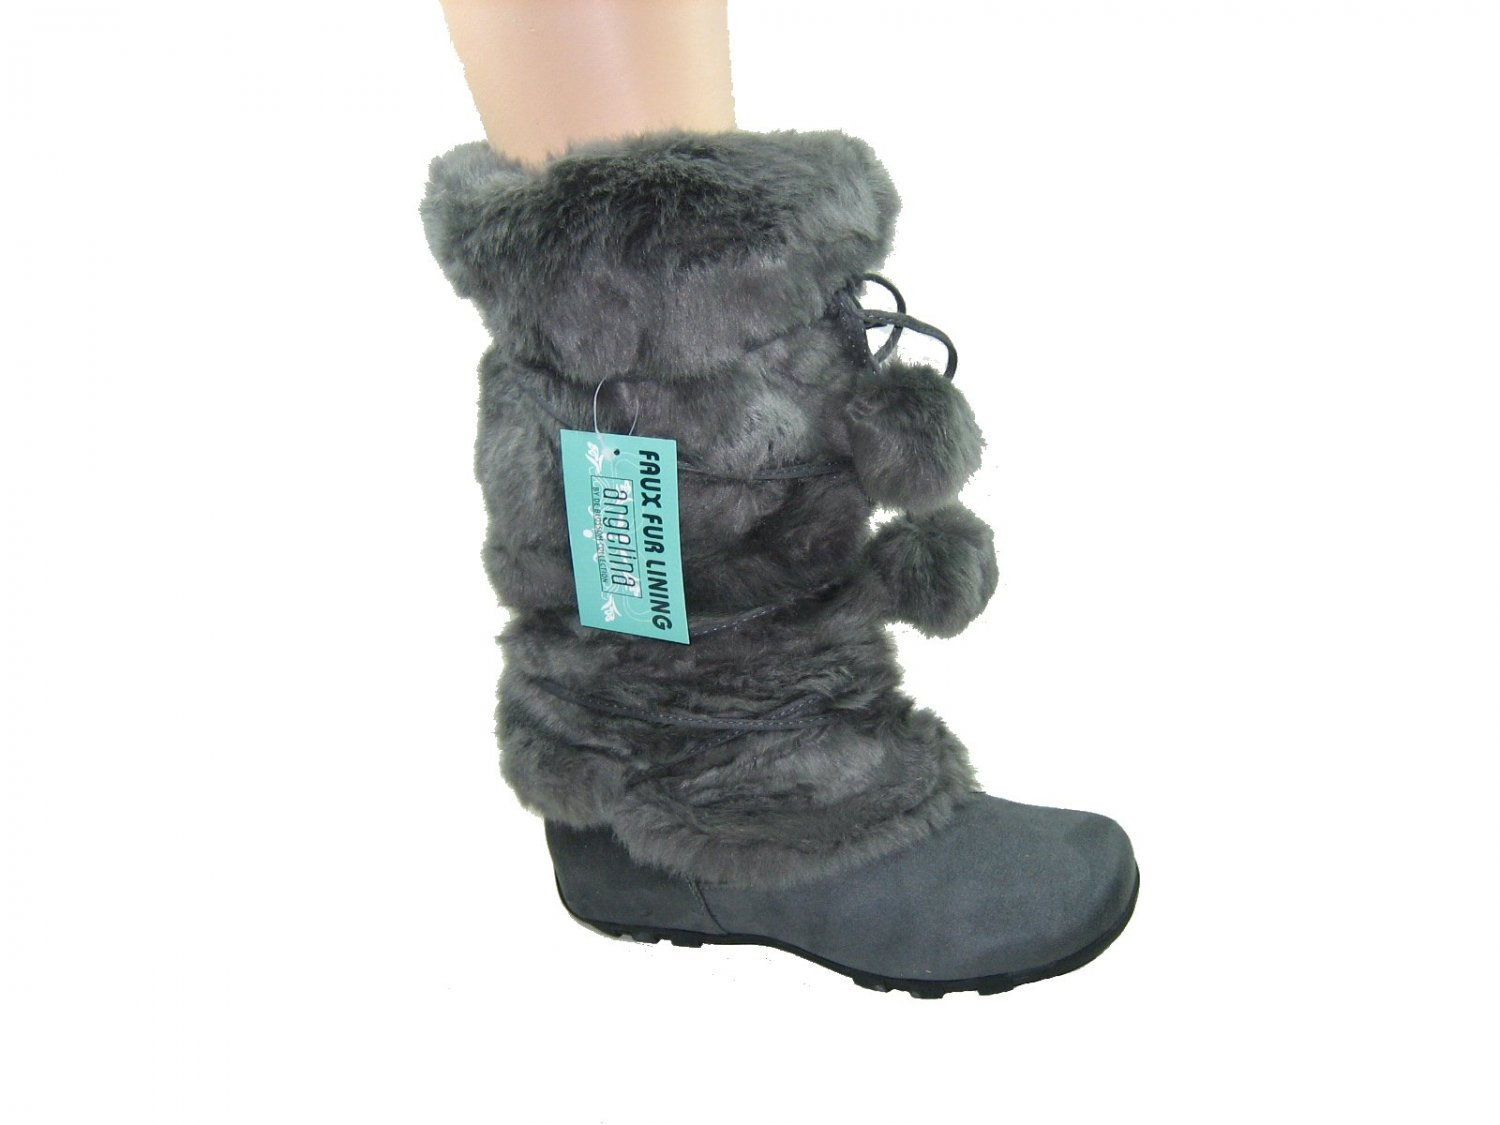 Blossom women's fashion gray faux suede mid-calf faux fur pom pom winter boots size 11